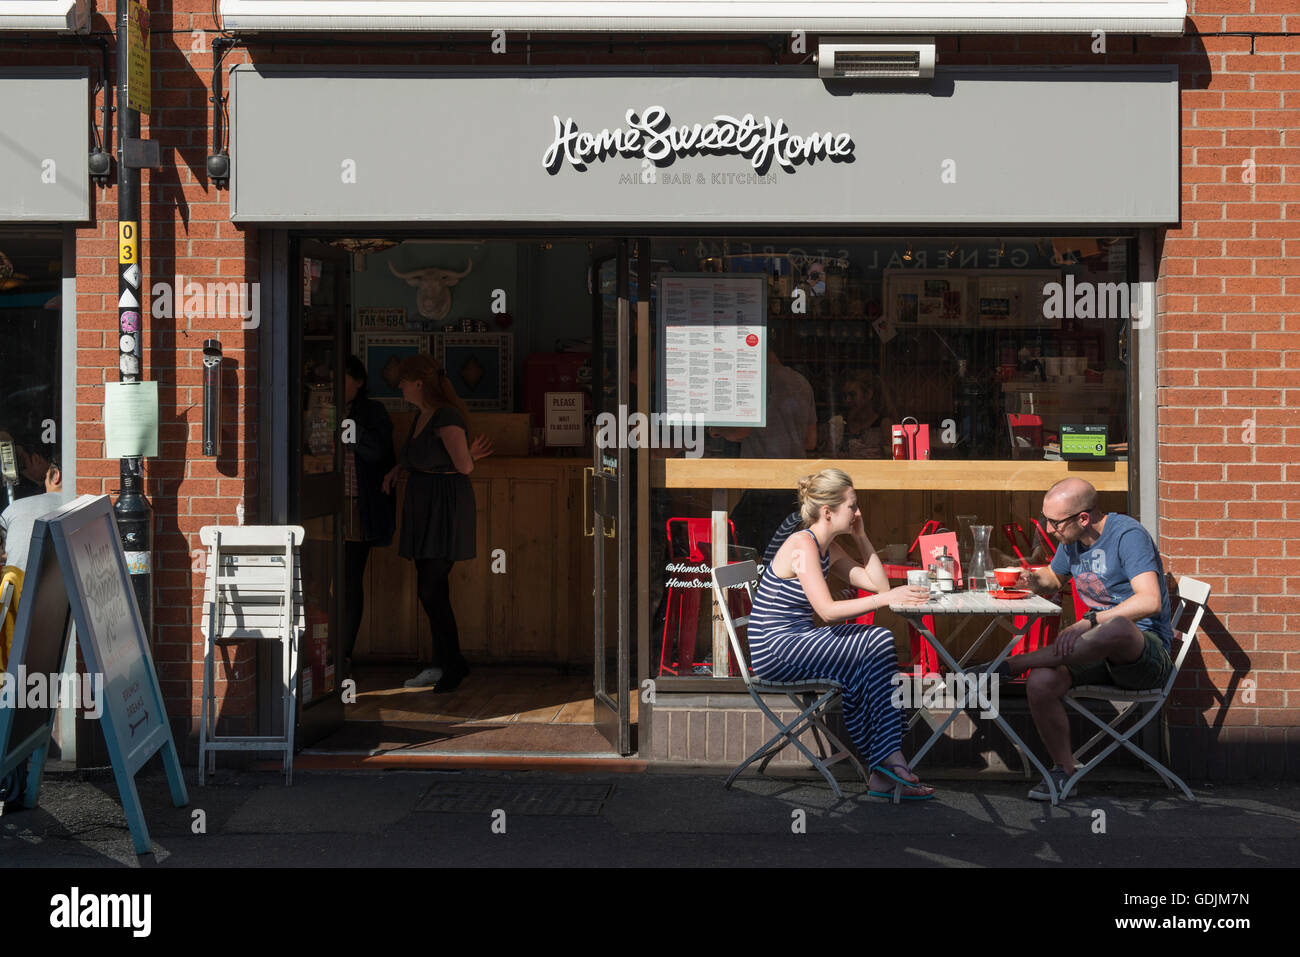 A couple enjoying a drink outside Home Sweet Home located on Edge Street in the Northern Quarter area of Manchester. - Stock Image